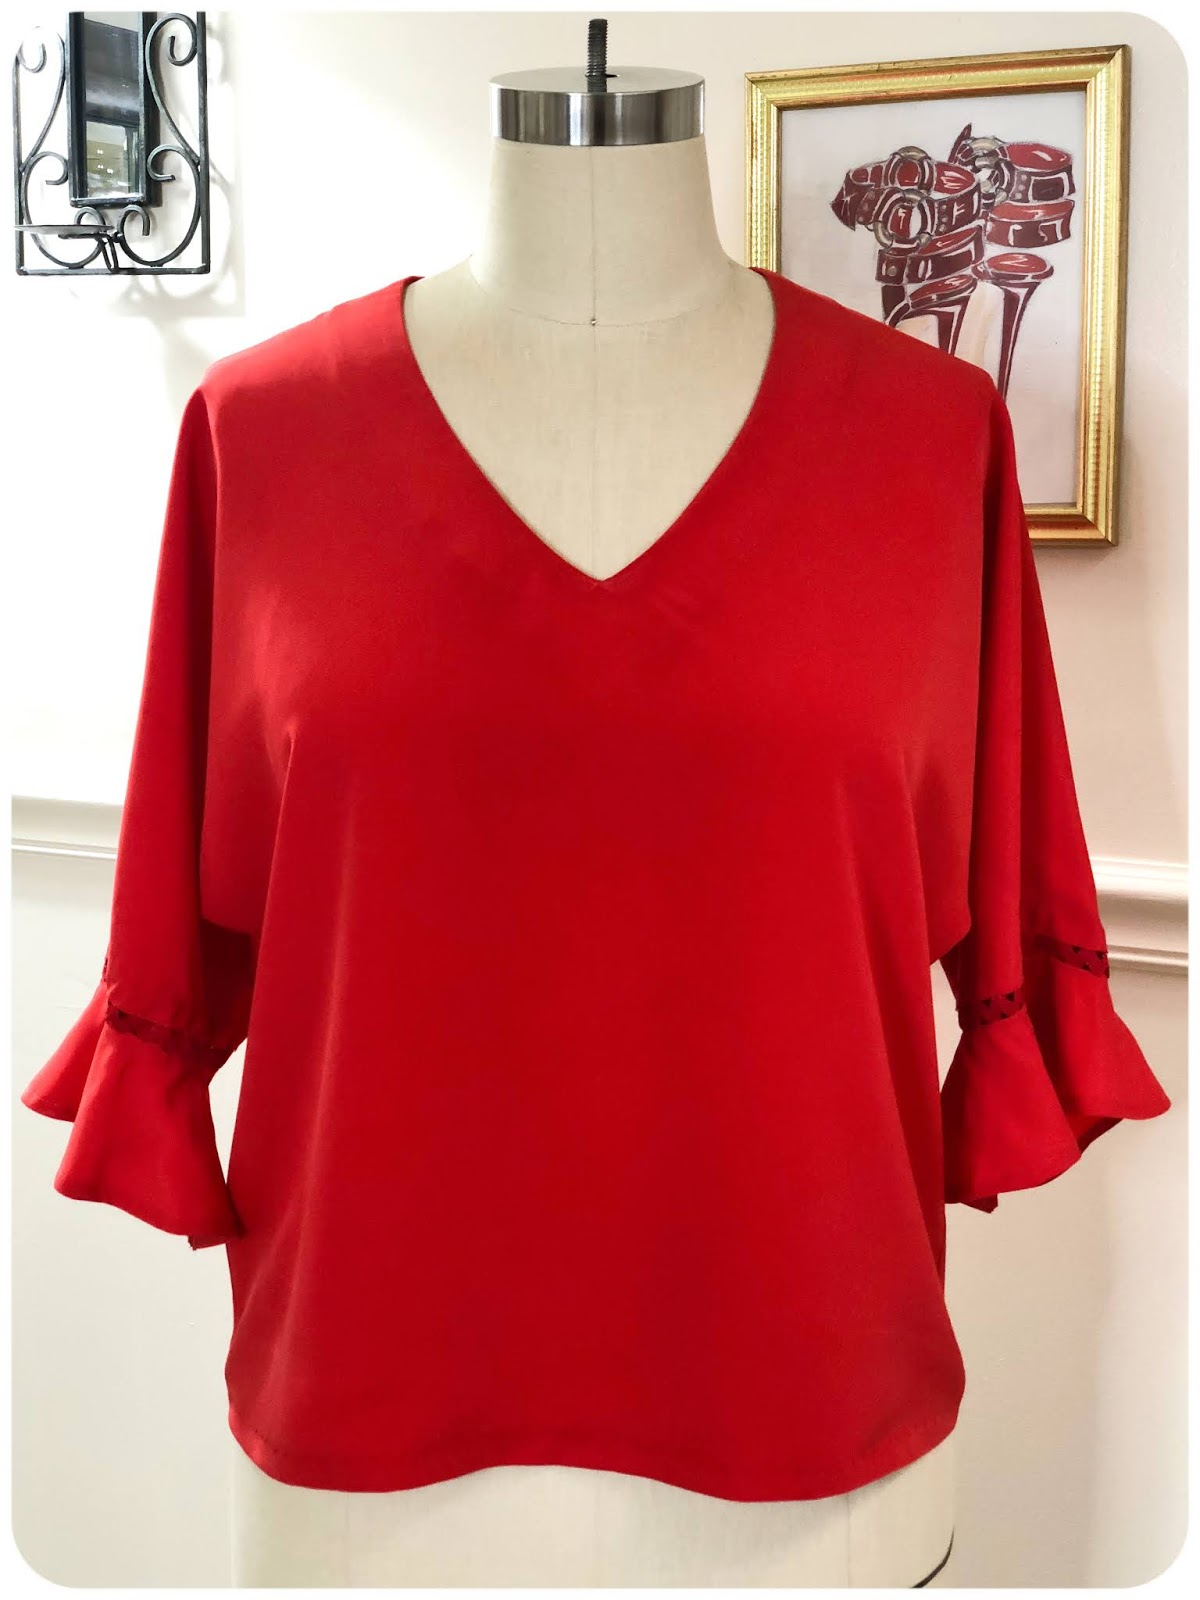 Simplicity 8694 - A Cute Top with Floating Rick Rack Trim! -- Erica Bunker DIY Style!